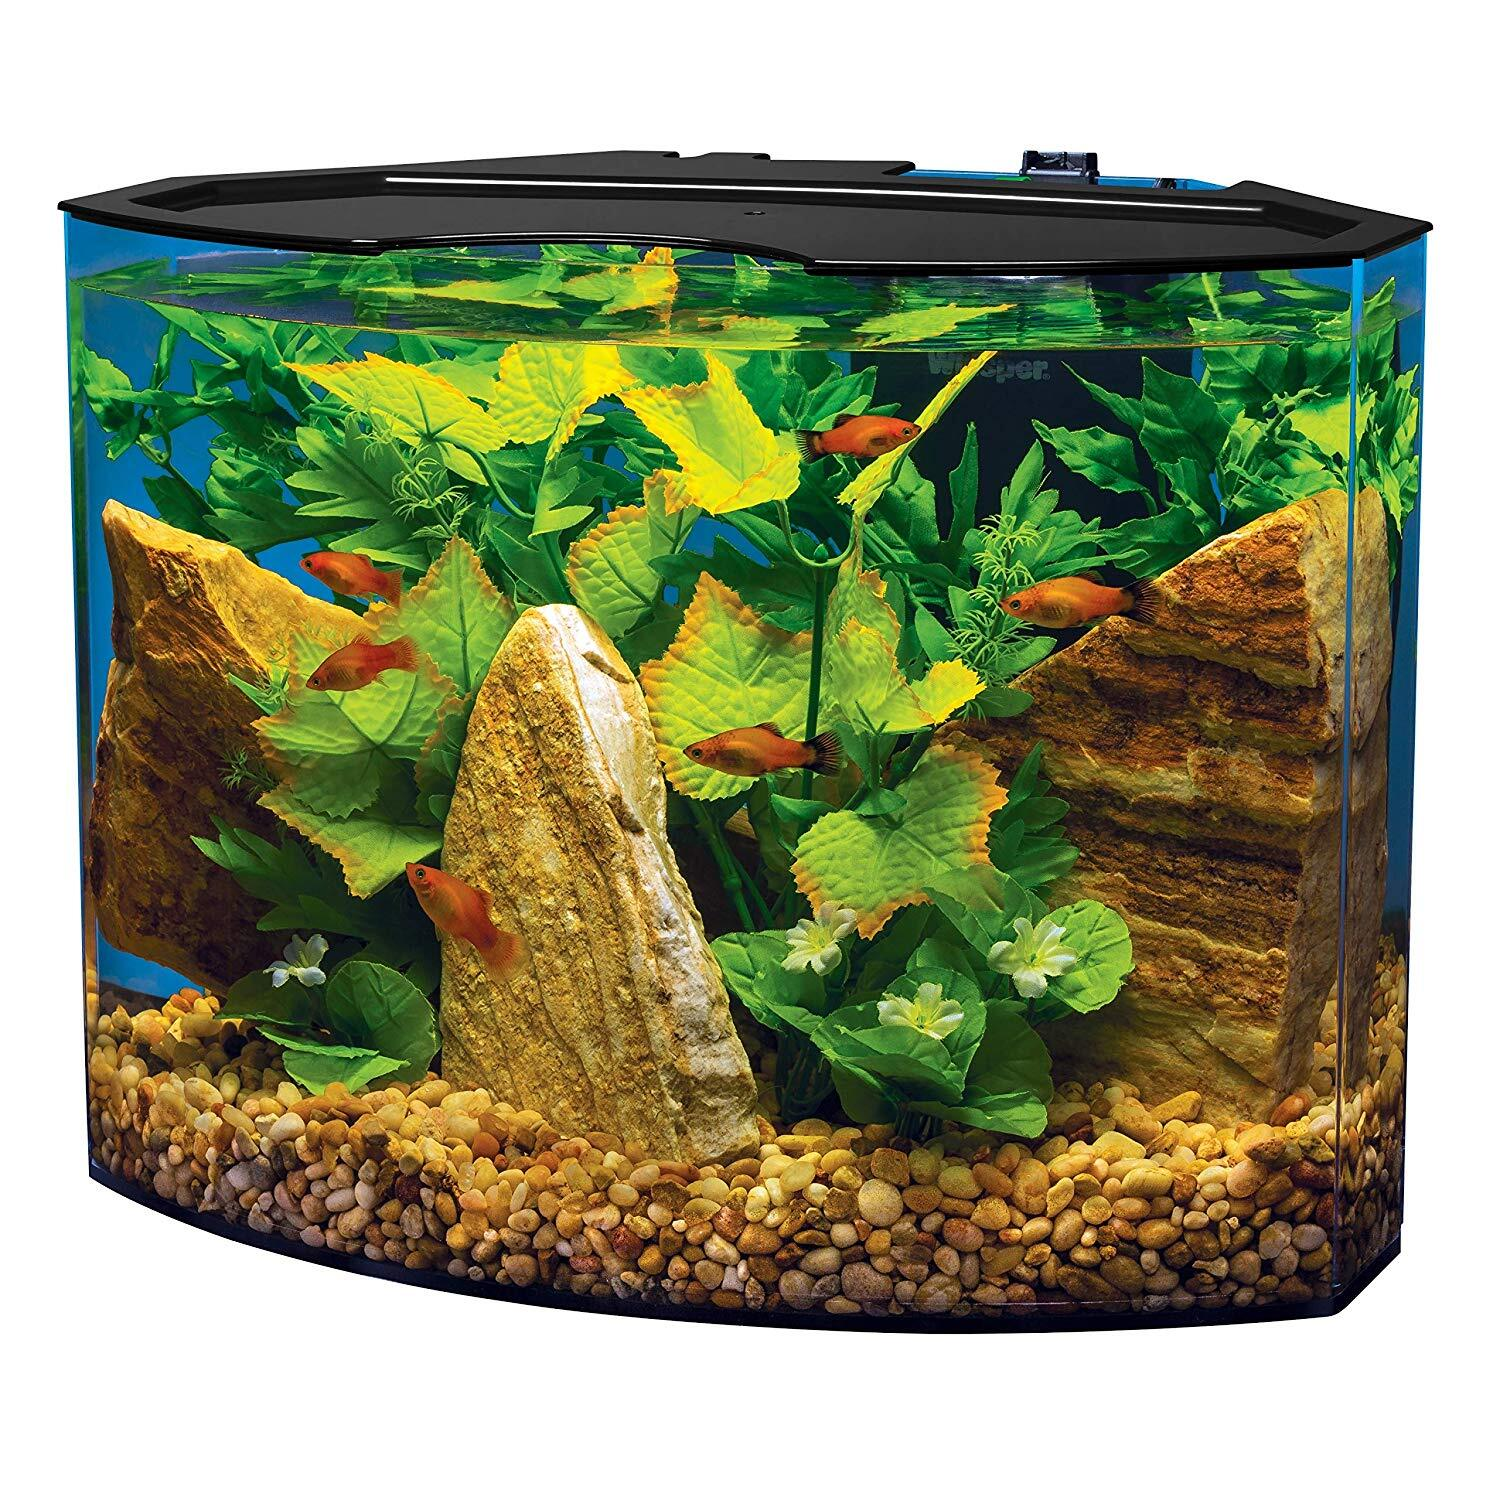 Tetra Crescent Acrylic Aquarium Kit